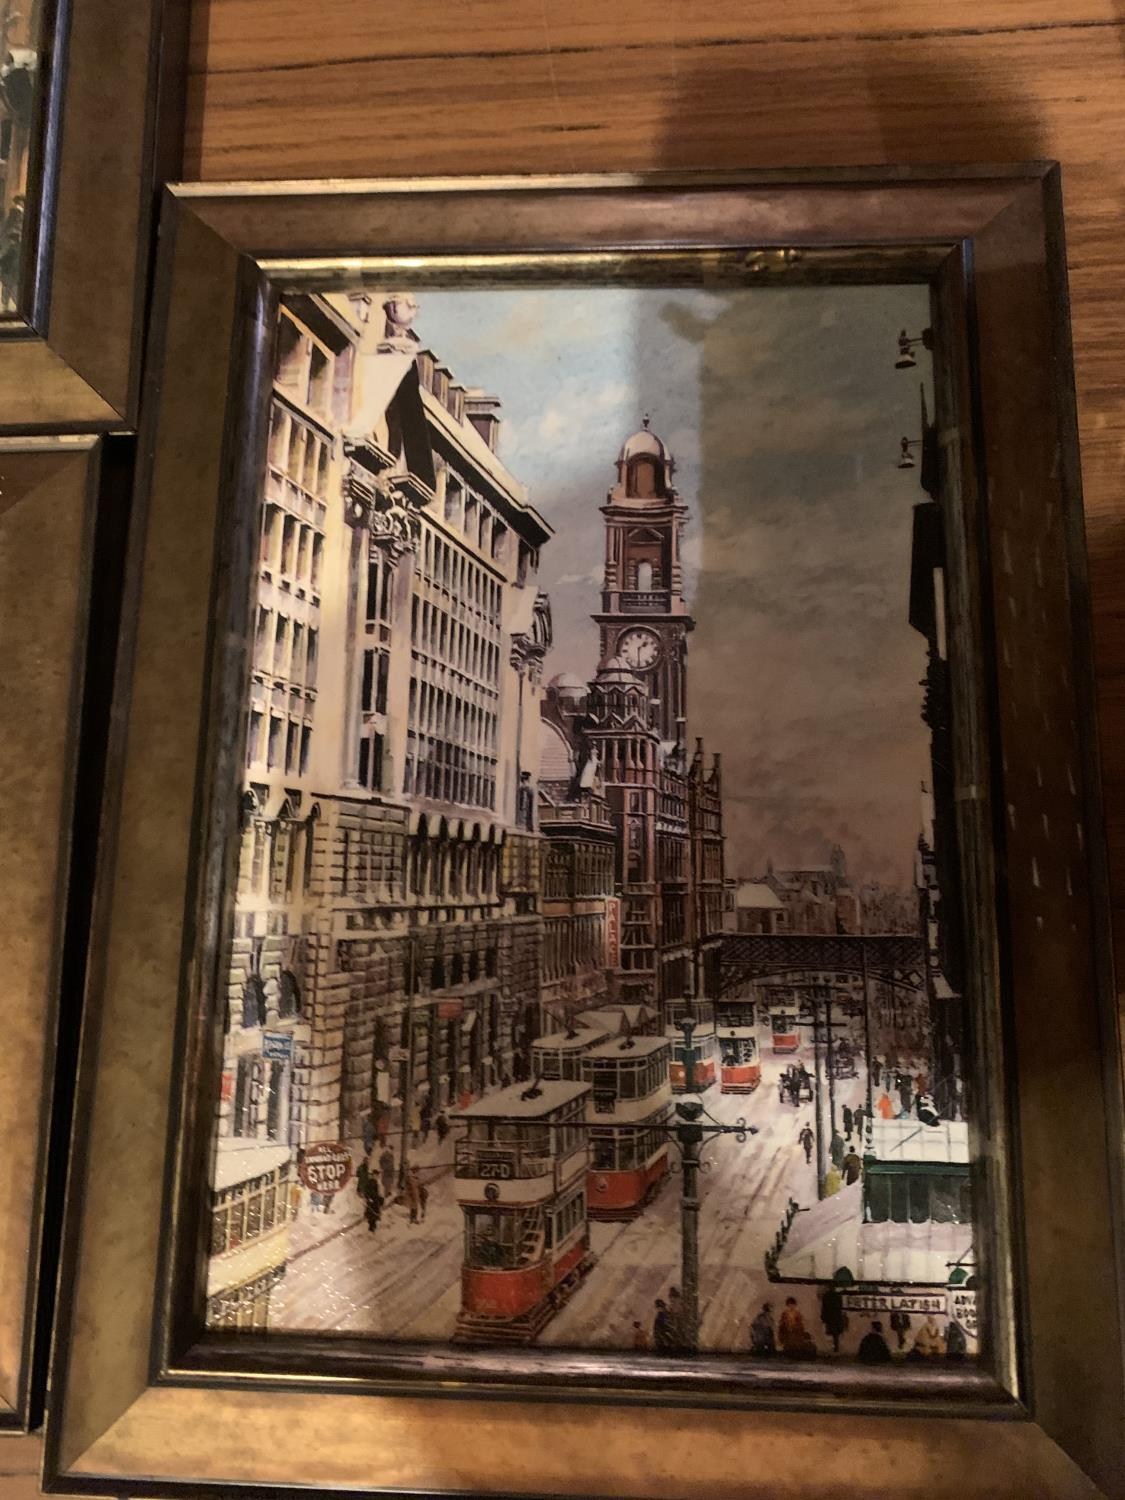 THREE FRAMED PRINTS OF CITY SCENES - Image 7 of 8